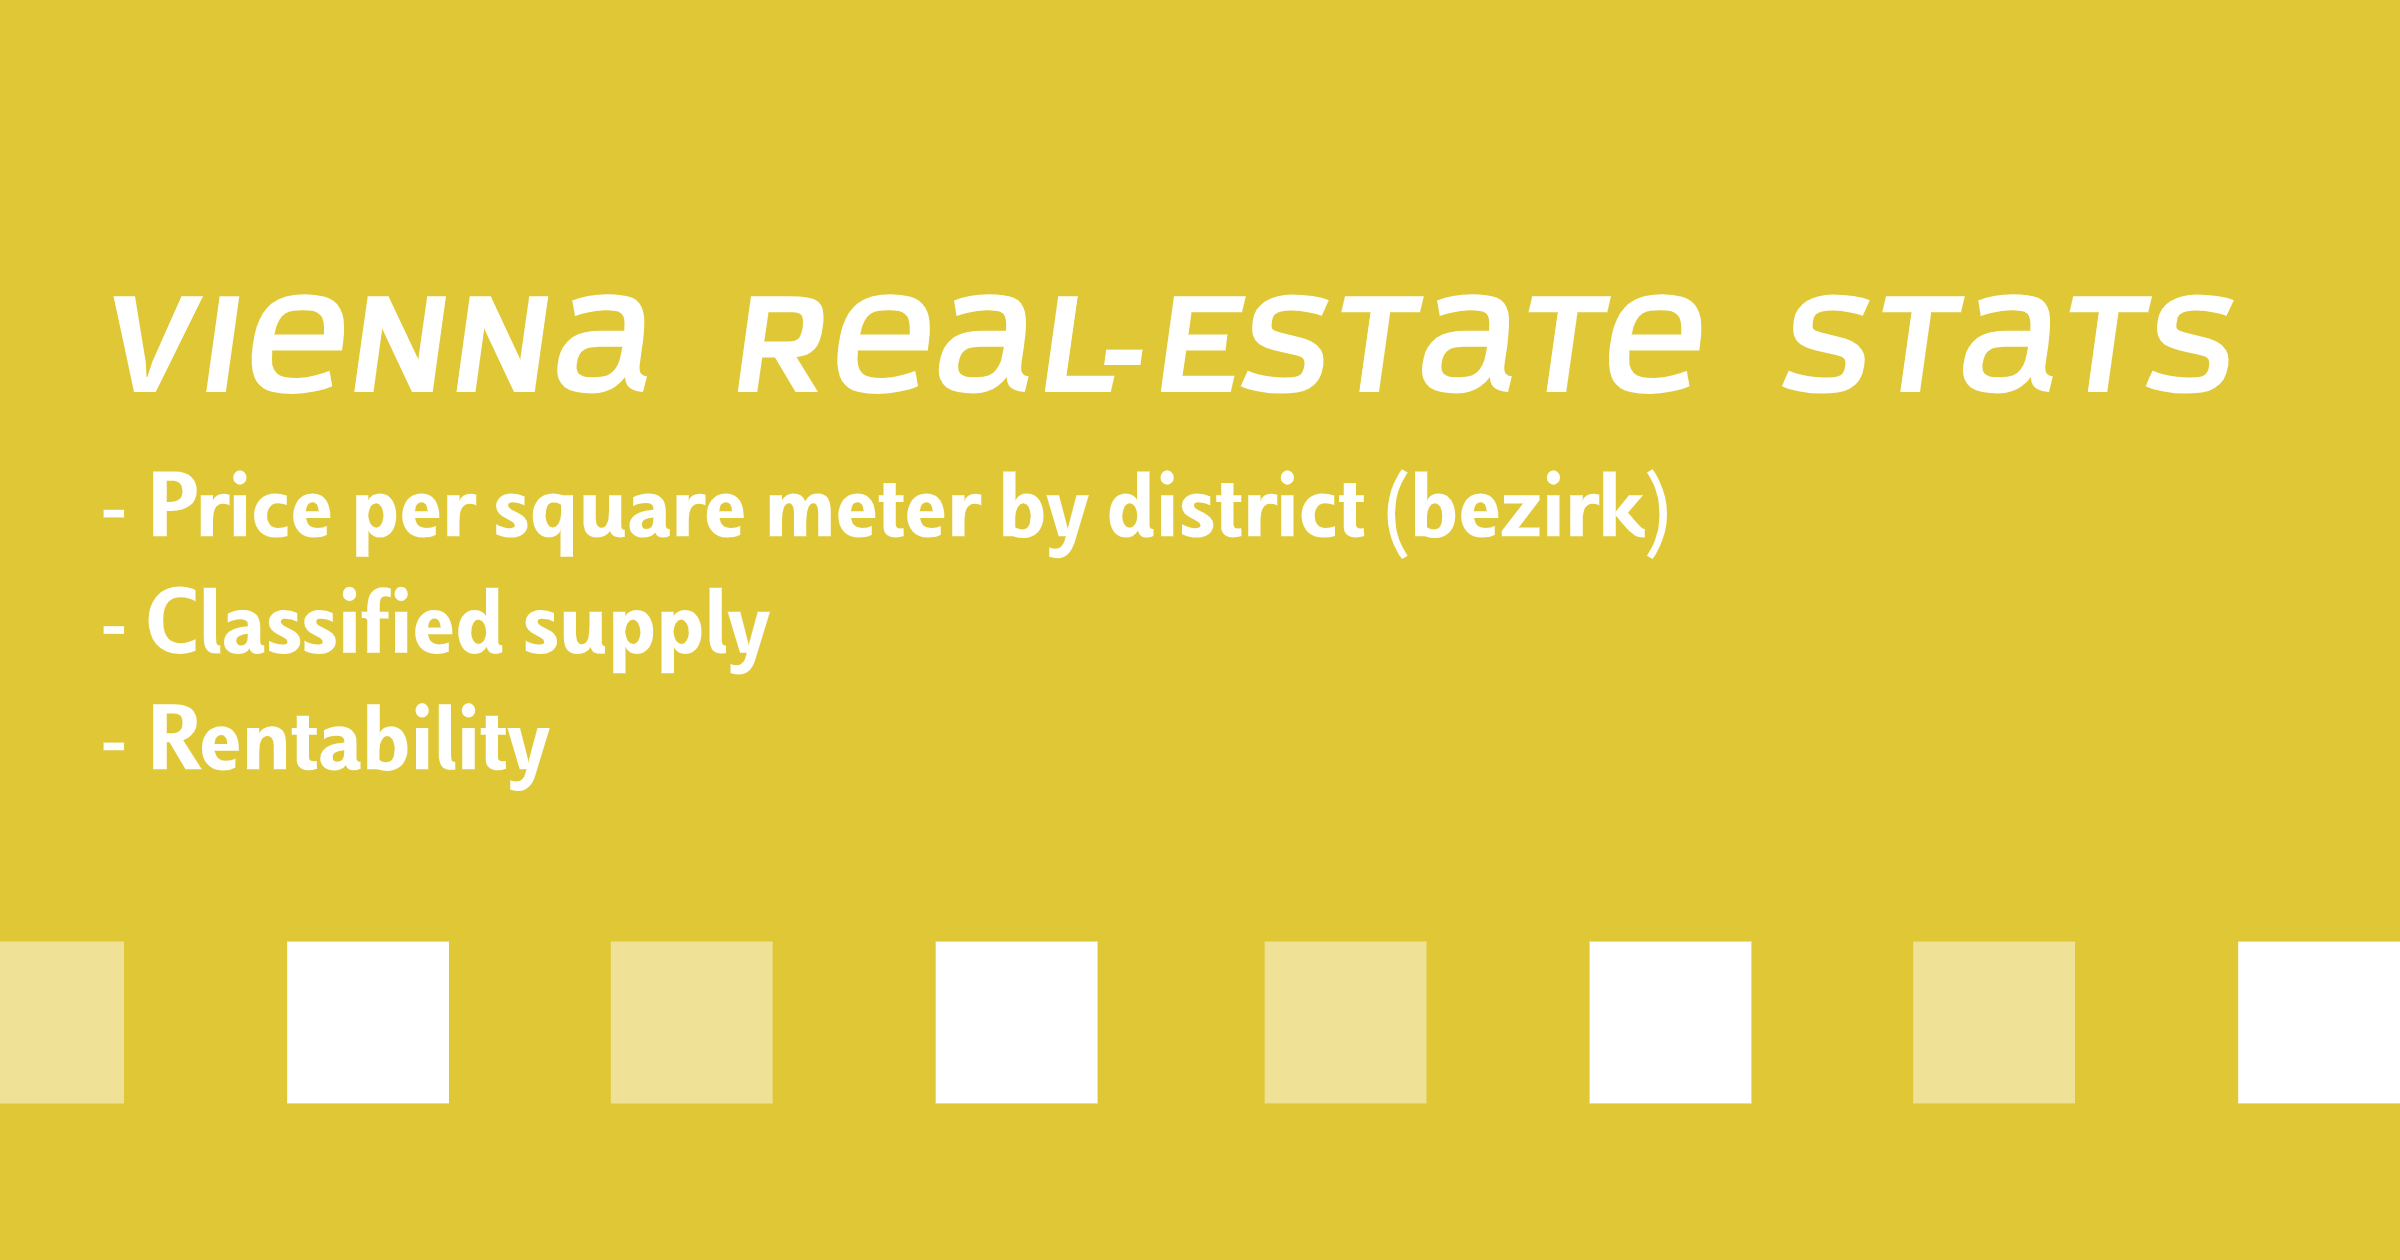 Vienna, Austria, Residential Real-Estate Price Tracker